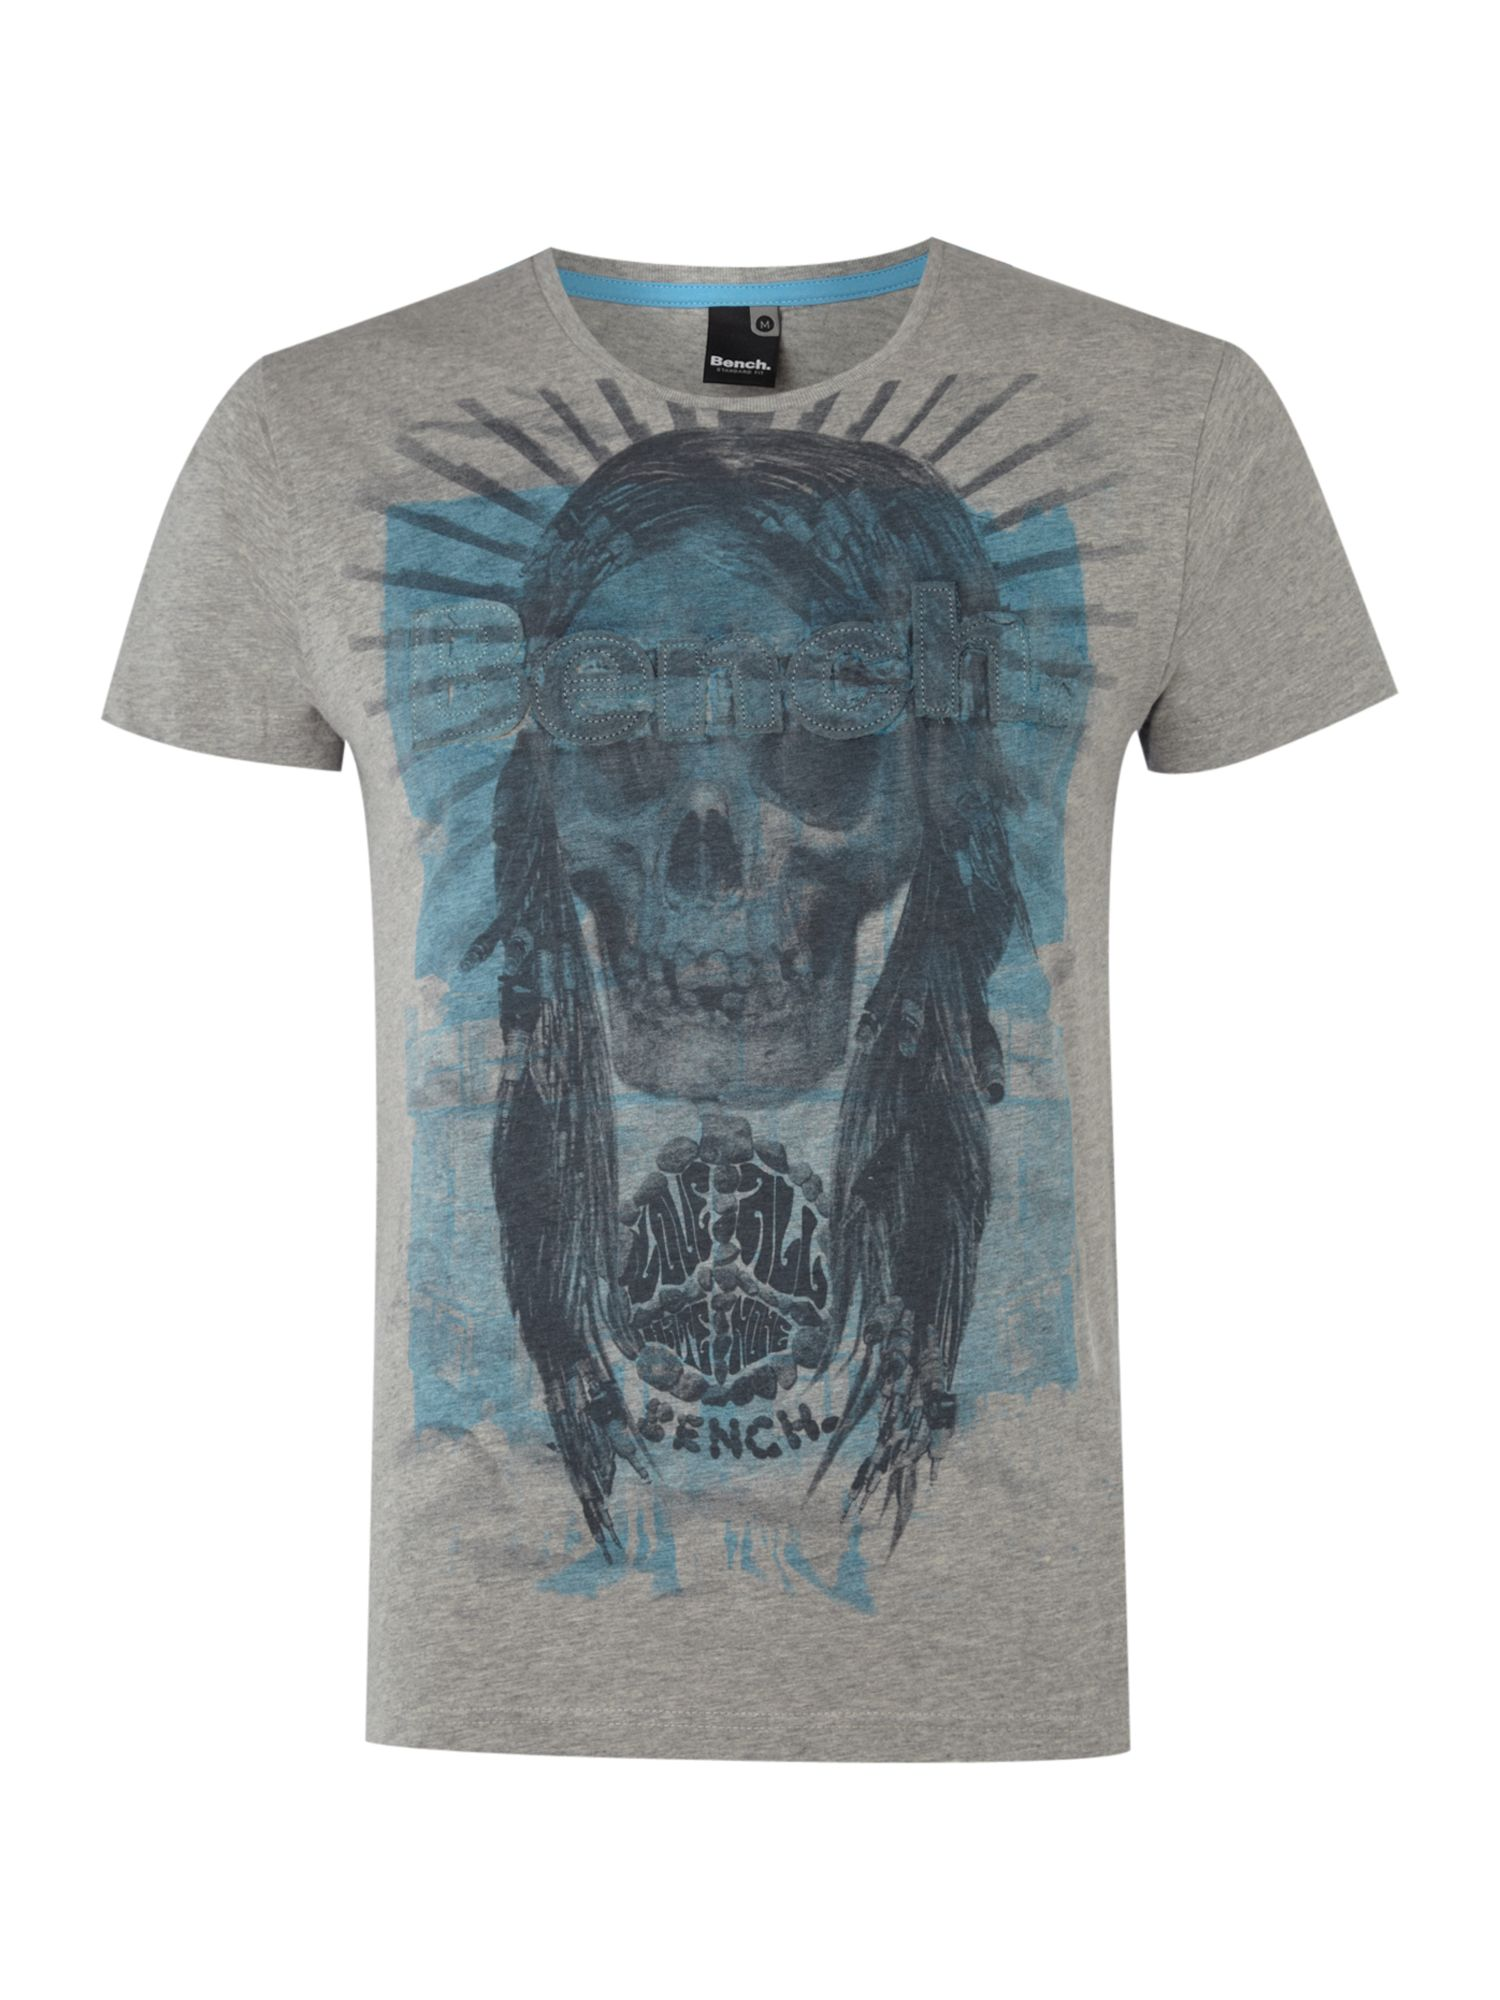 Bench Mens Bench Skull print graphic T-shirt, product image